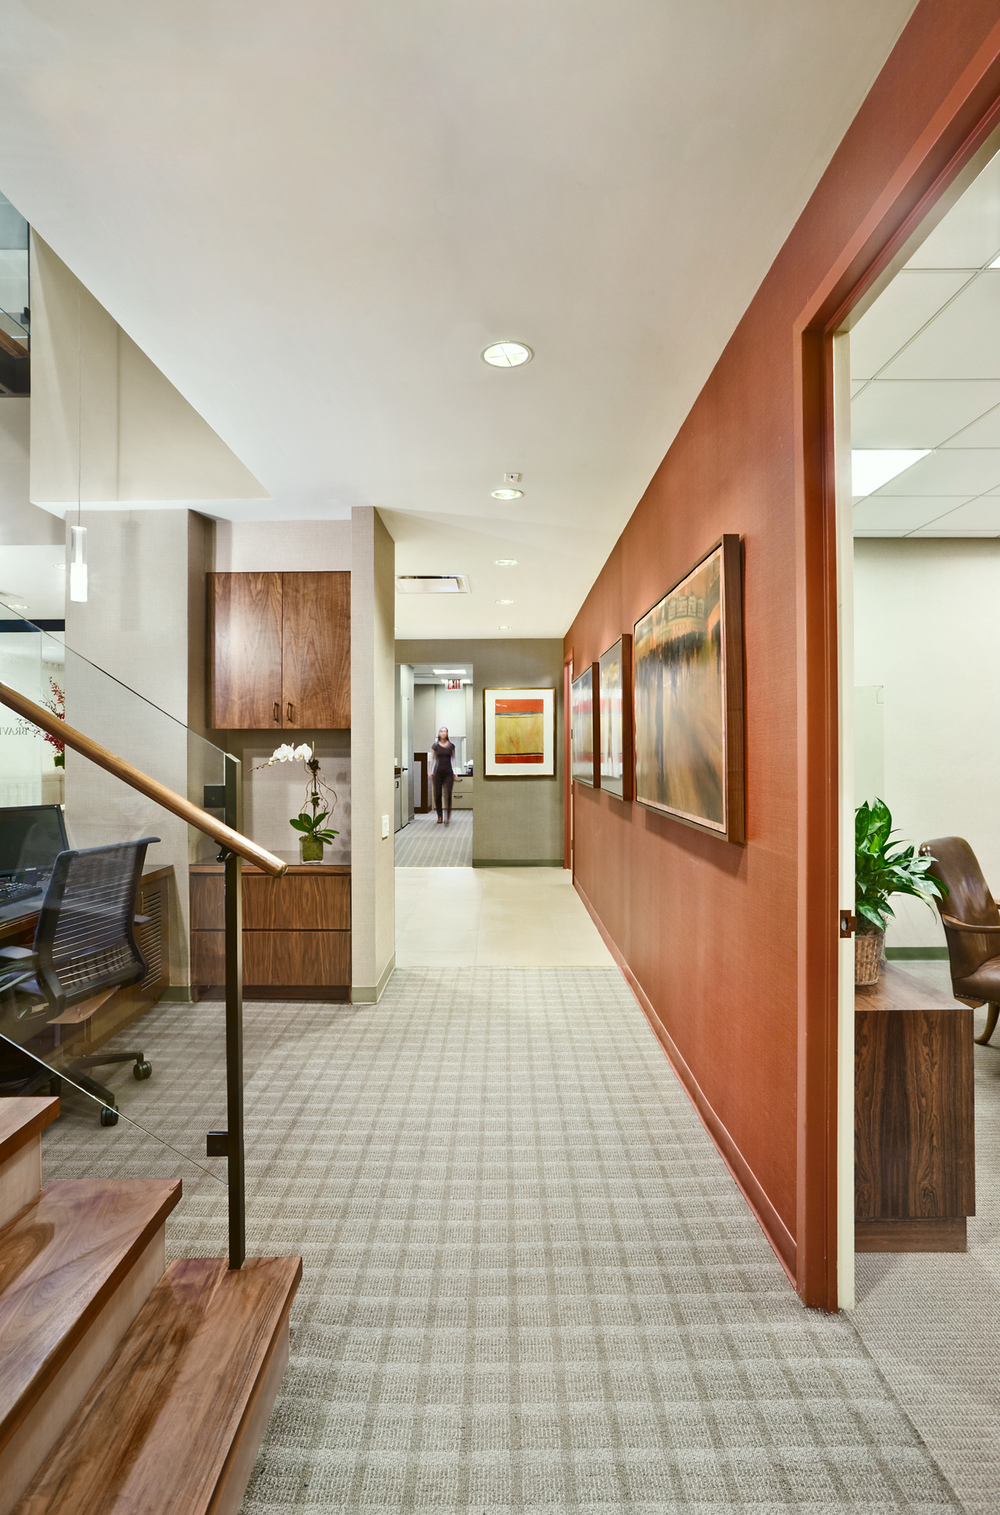 Tobin Parnes Design. Workplace Design. Office Design. Corridor Design